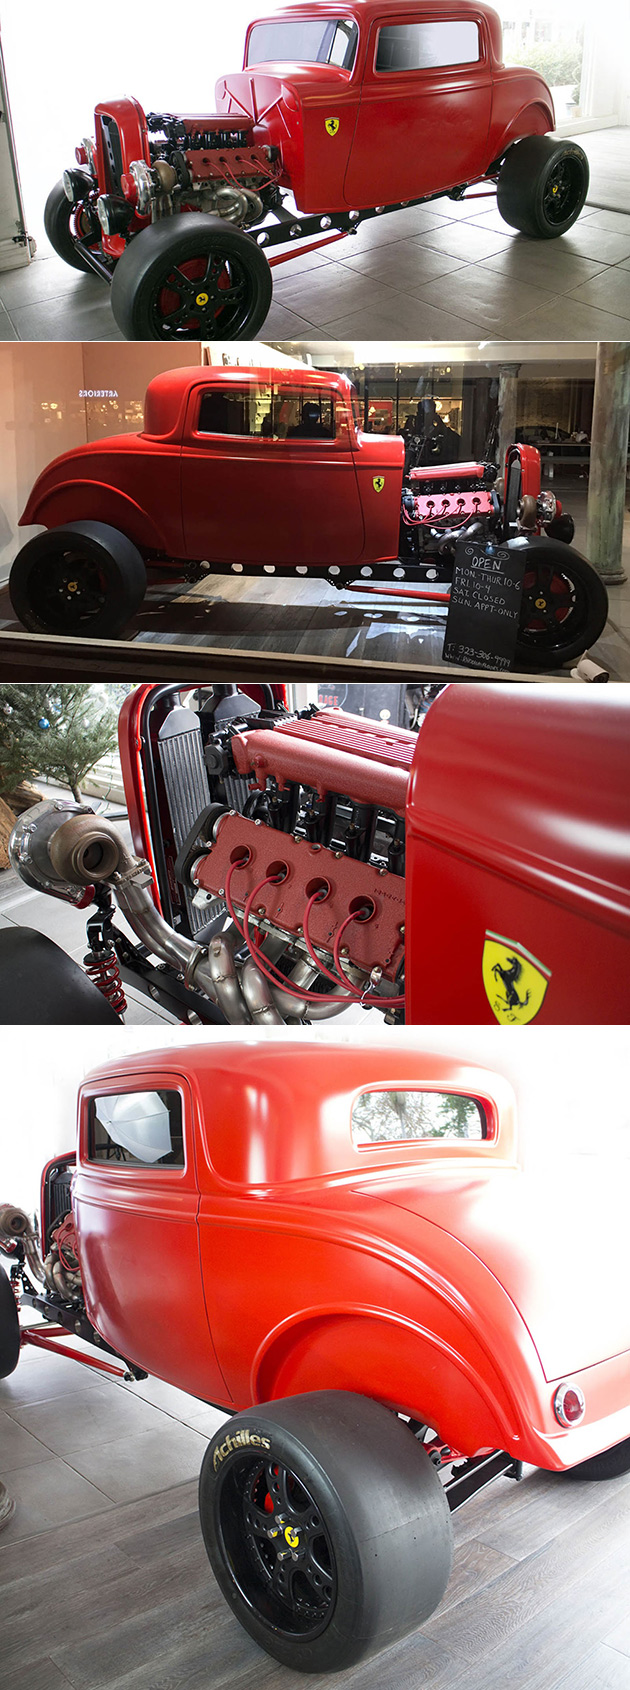 Ferrari-Powered Hot Rod